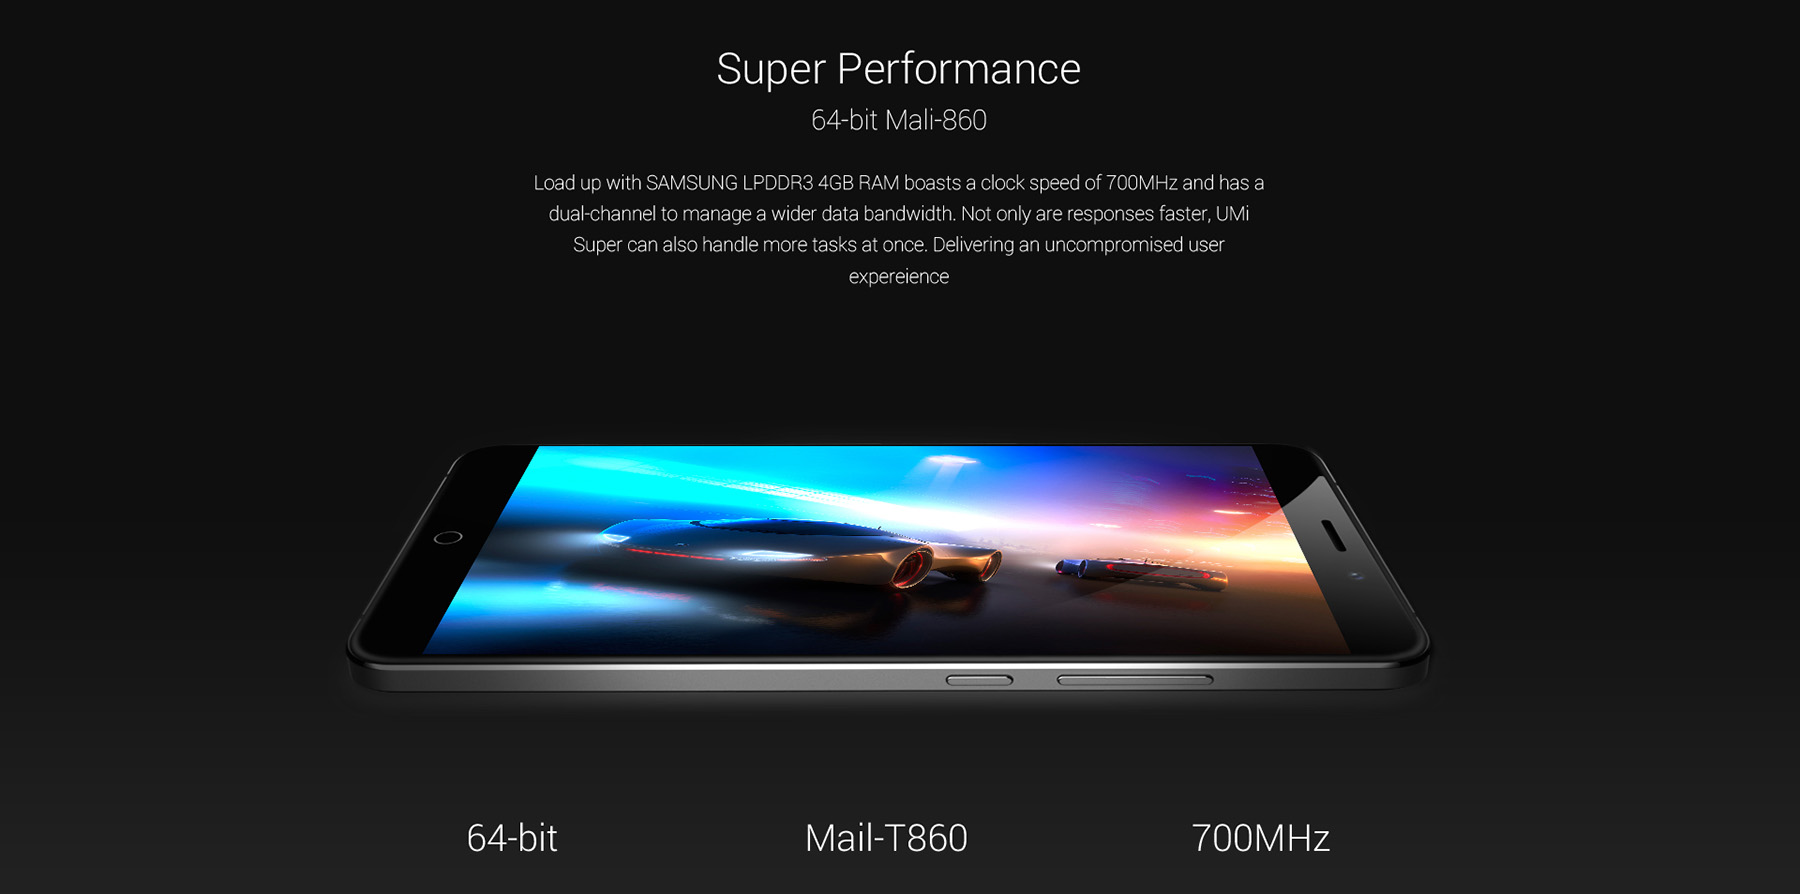 UMI Super , Display retina Sharp, 401ppi, 4GB RAM, rooten root, Android 6.0, Anleitung rooten